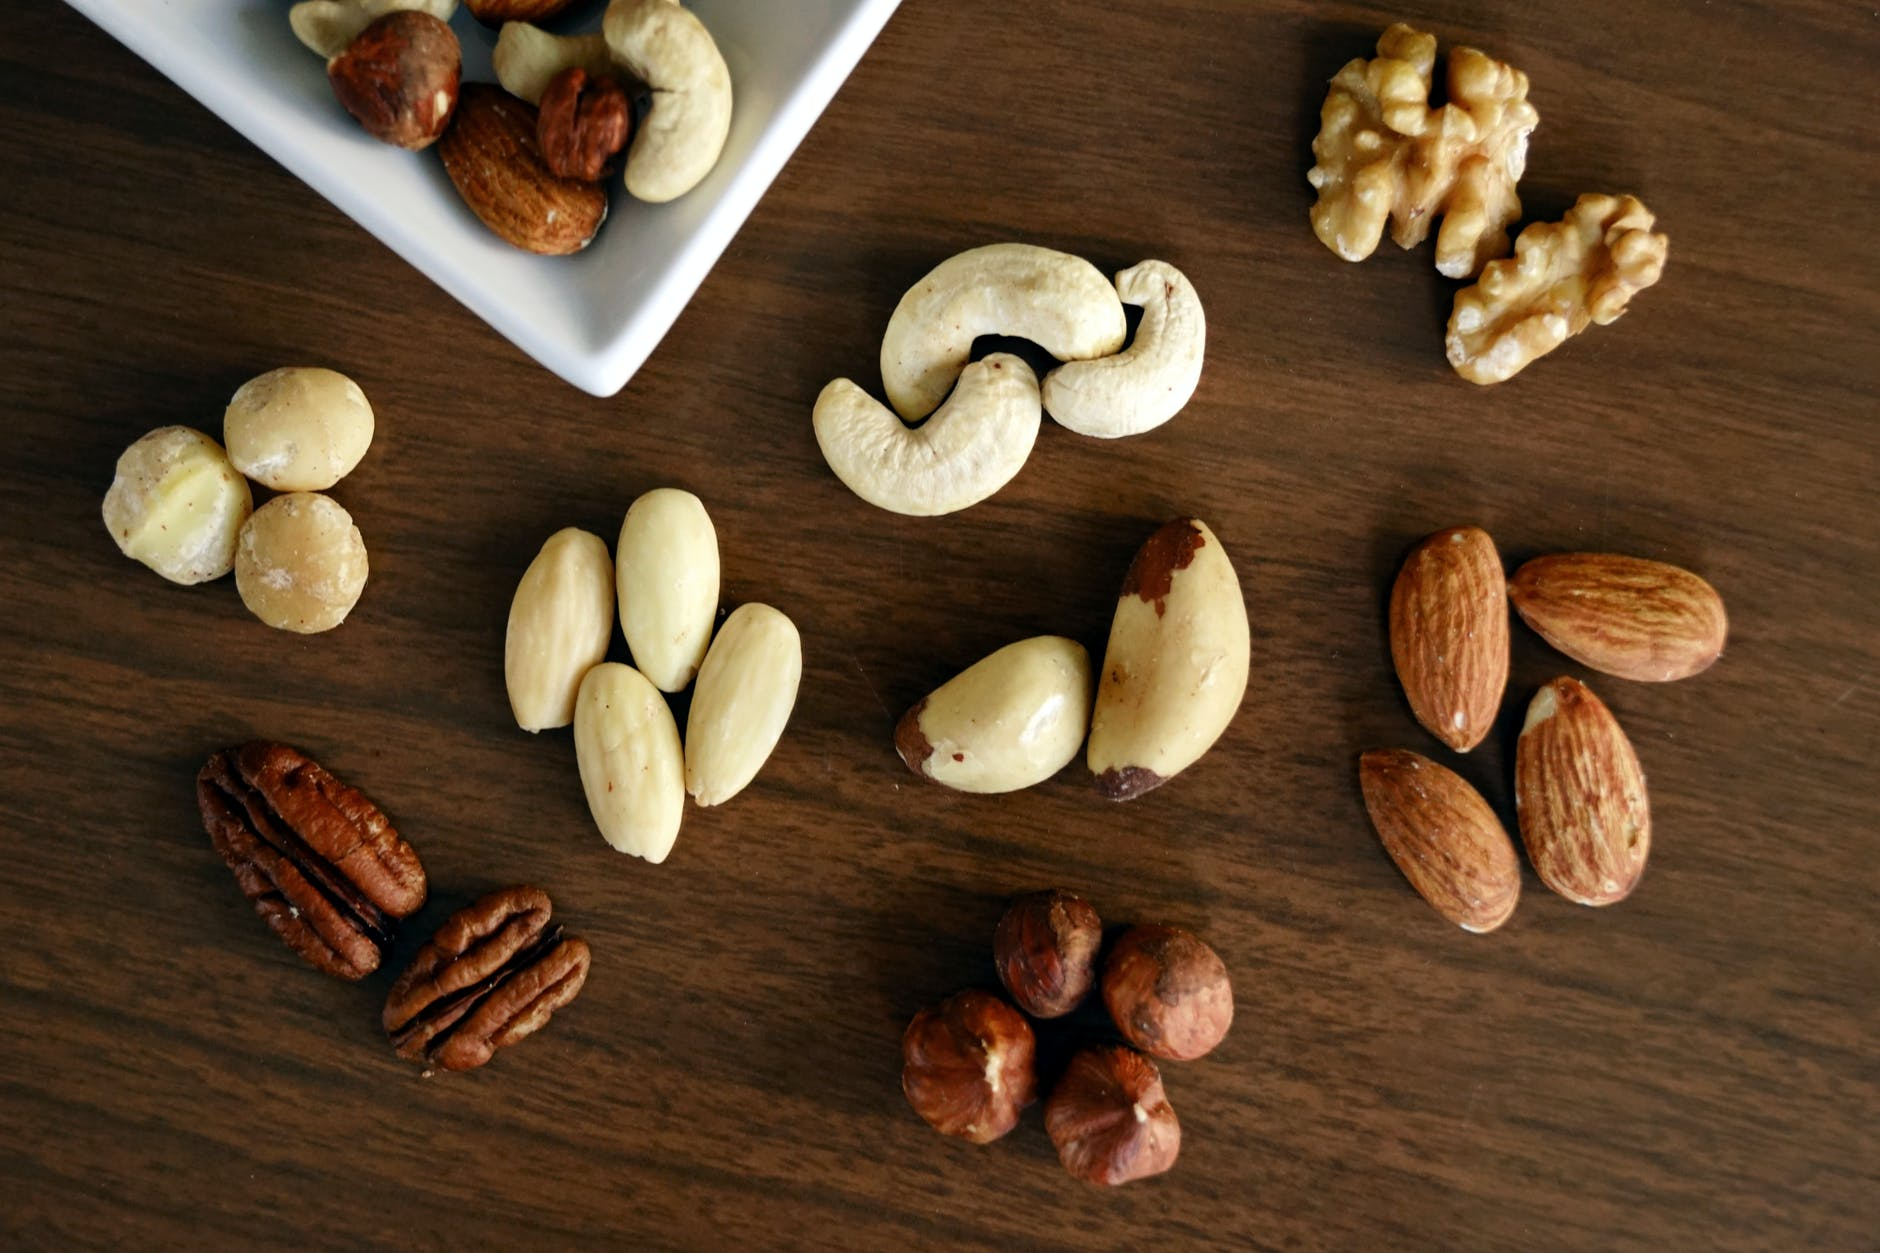 foods to built immunity against covid-19